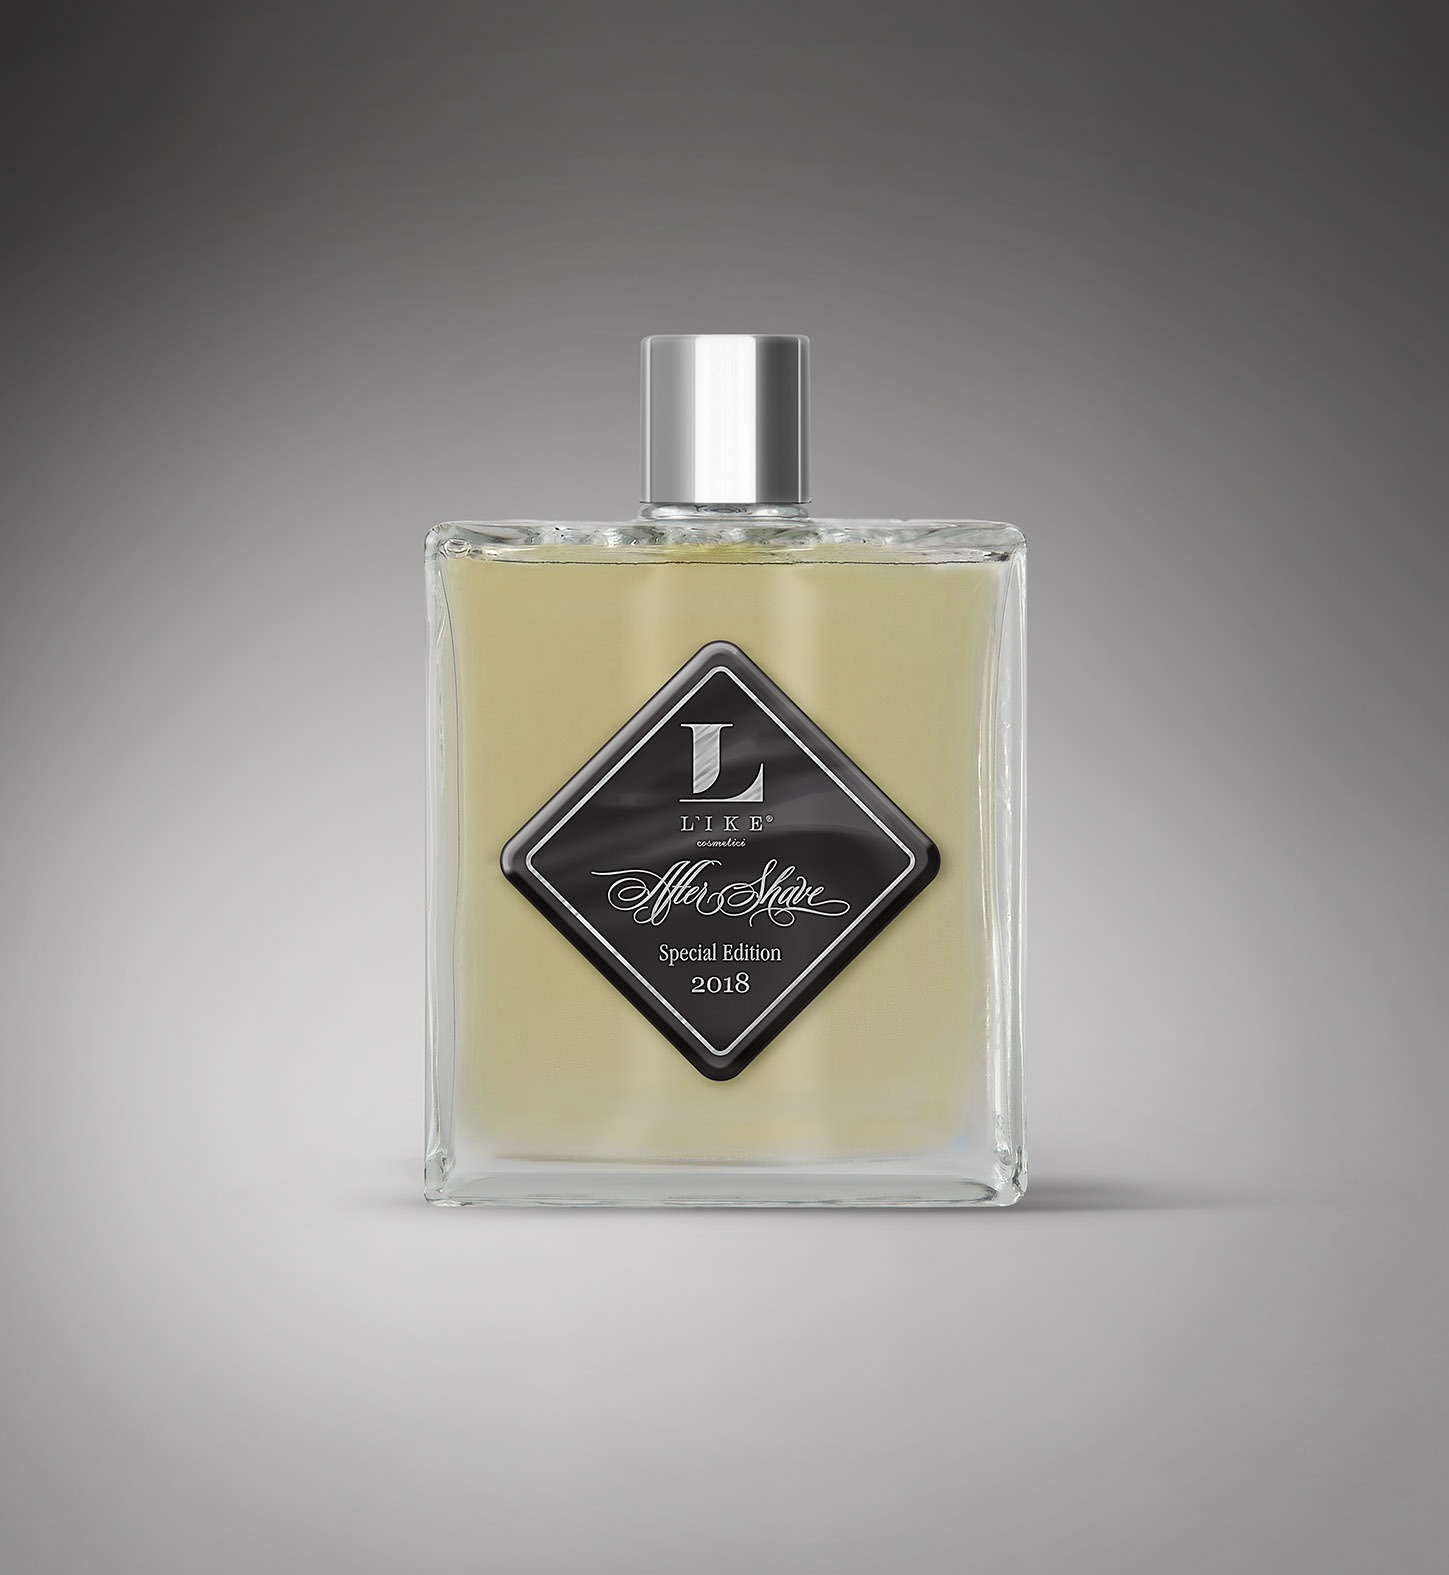 After Shave Special Edition 2018 - 100 ml